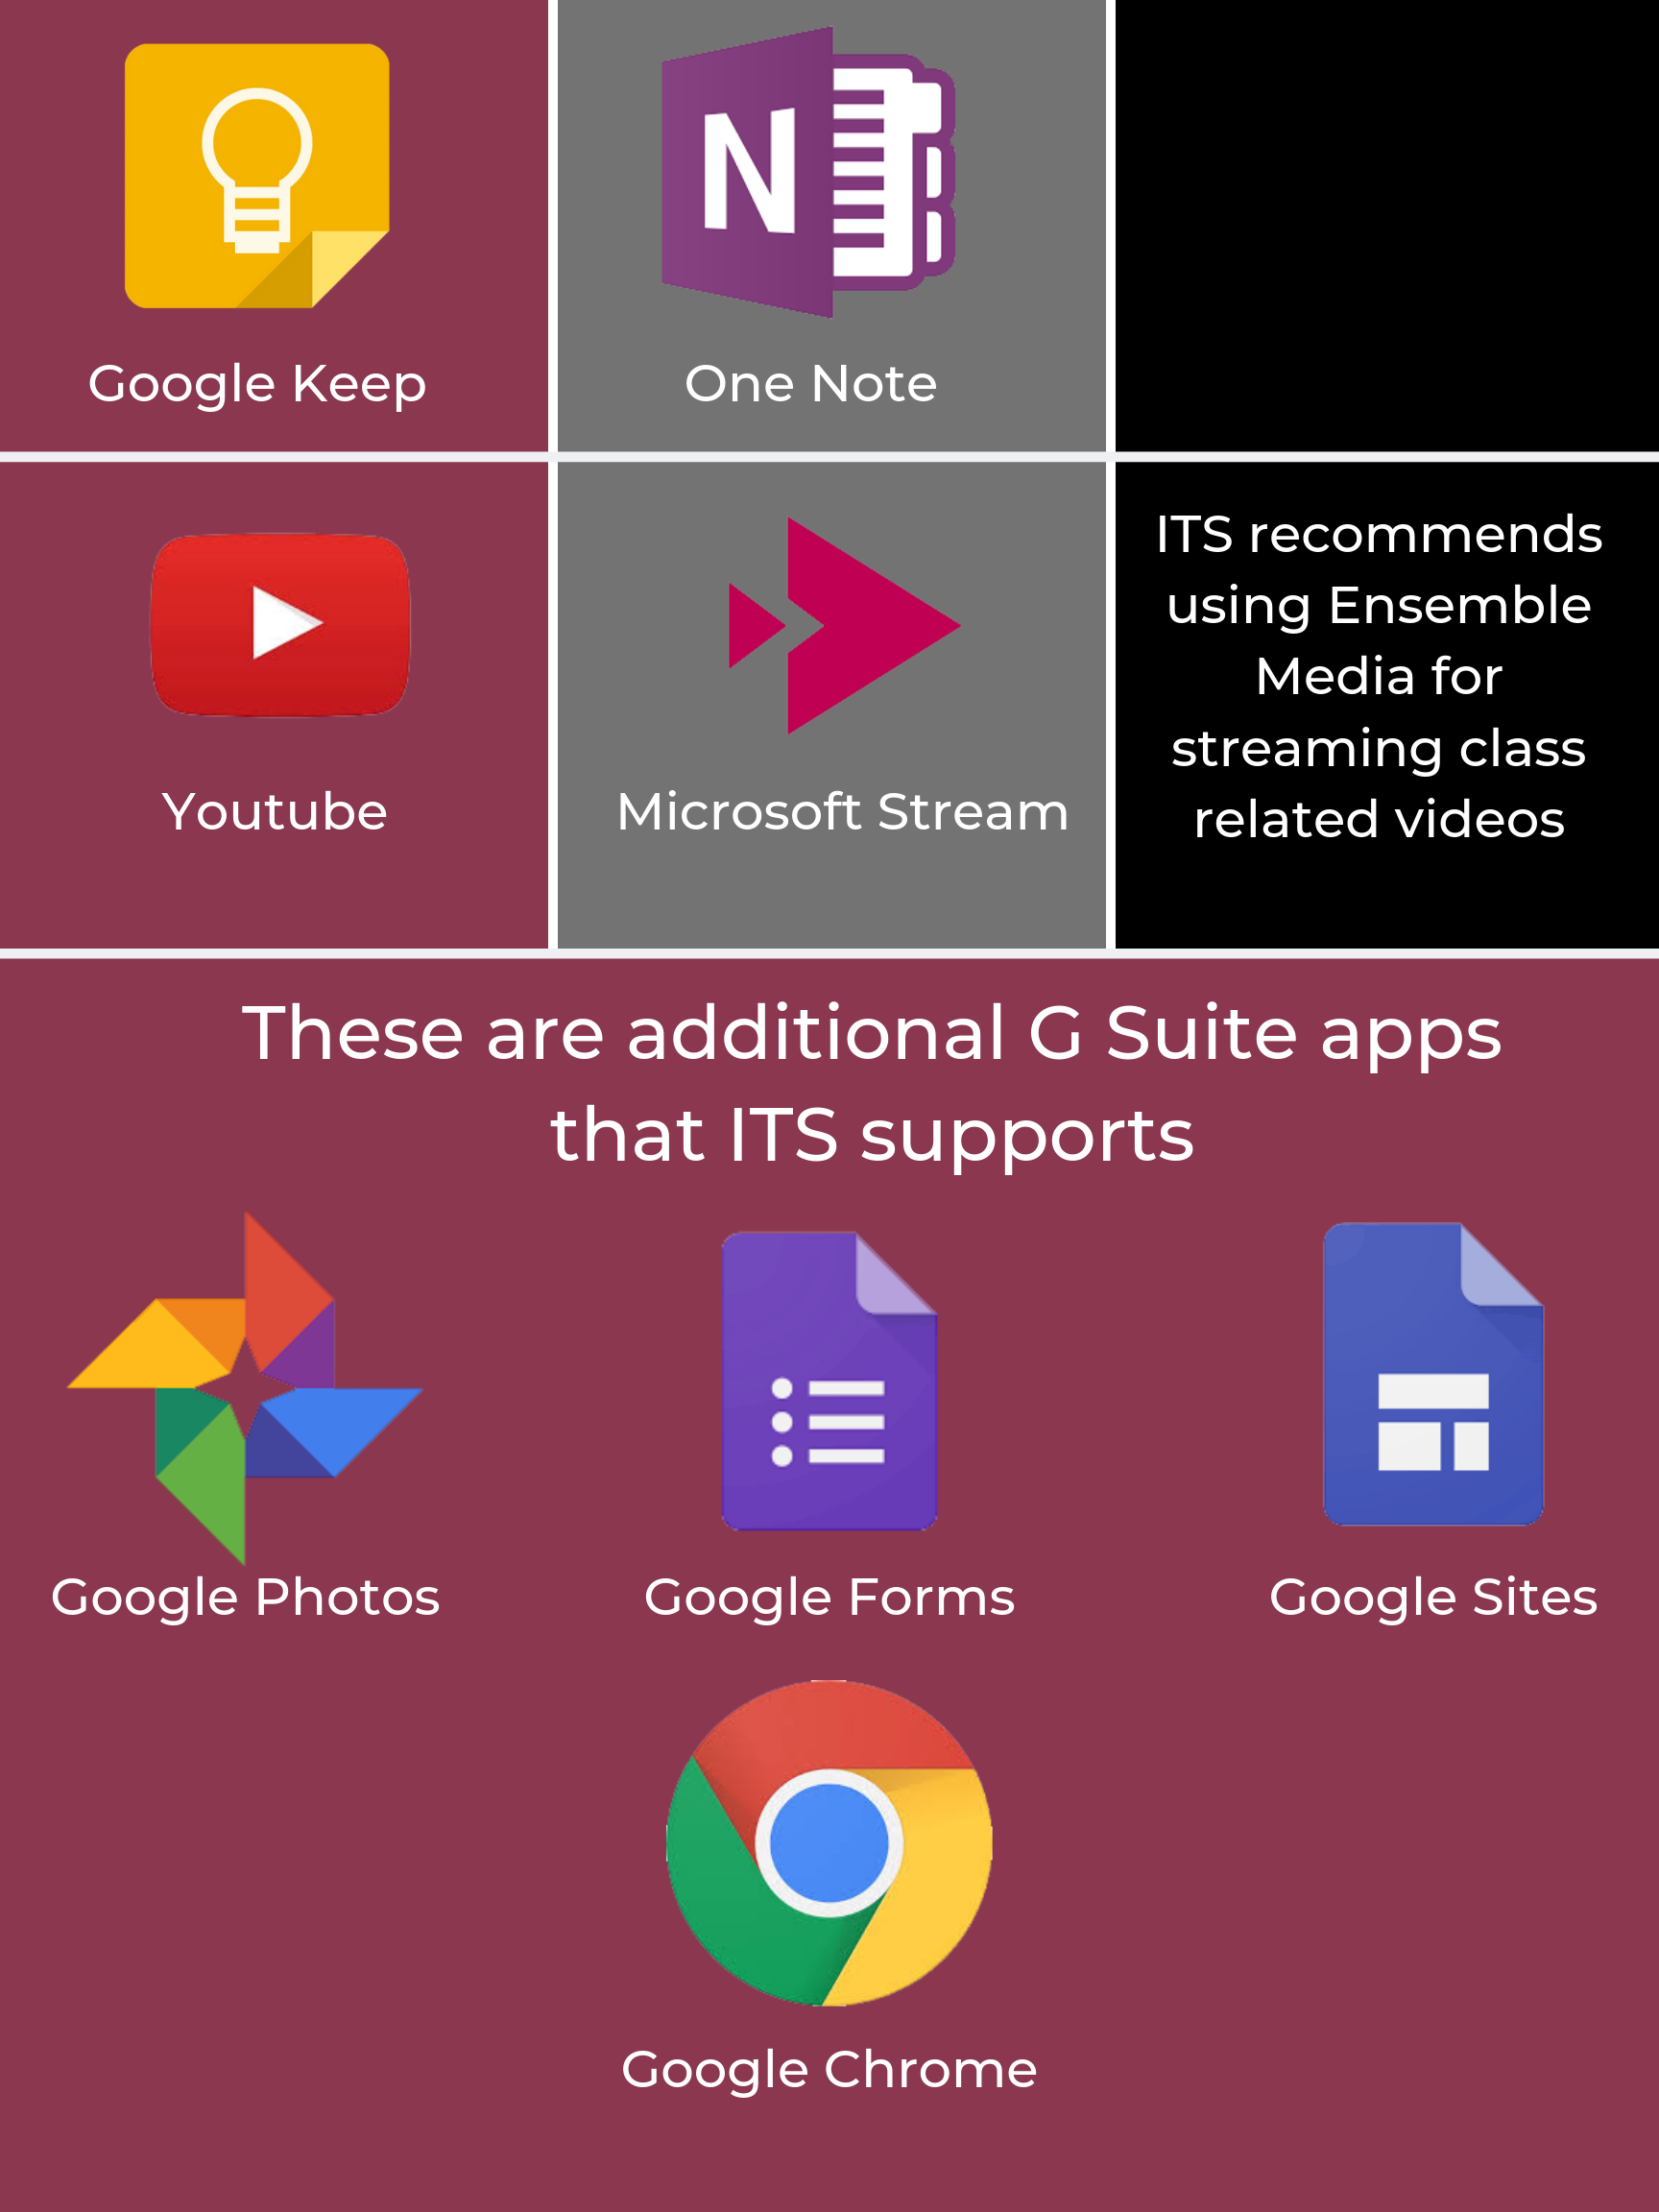 G Suite v. MS 365: What does ITS Recommend?